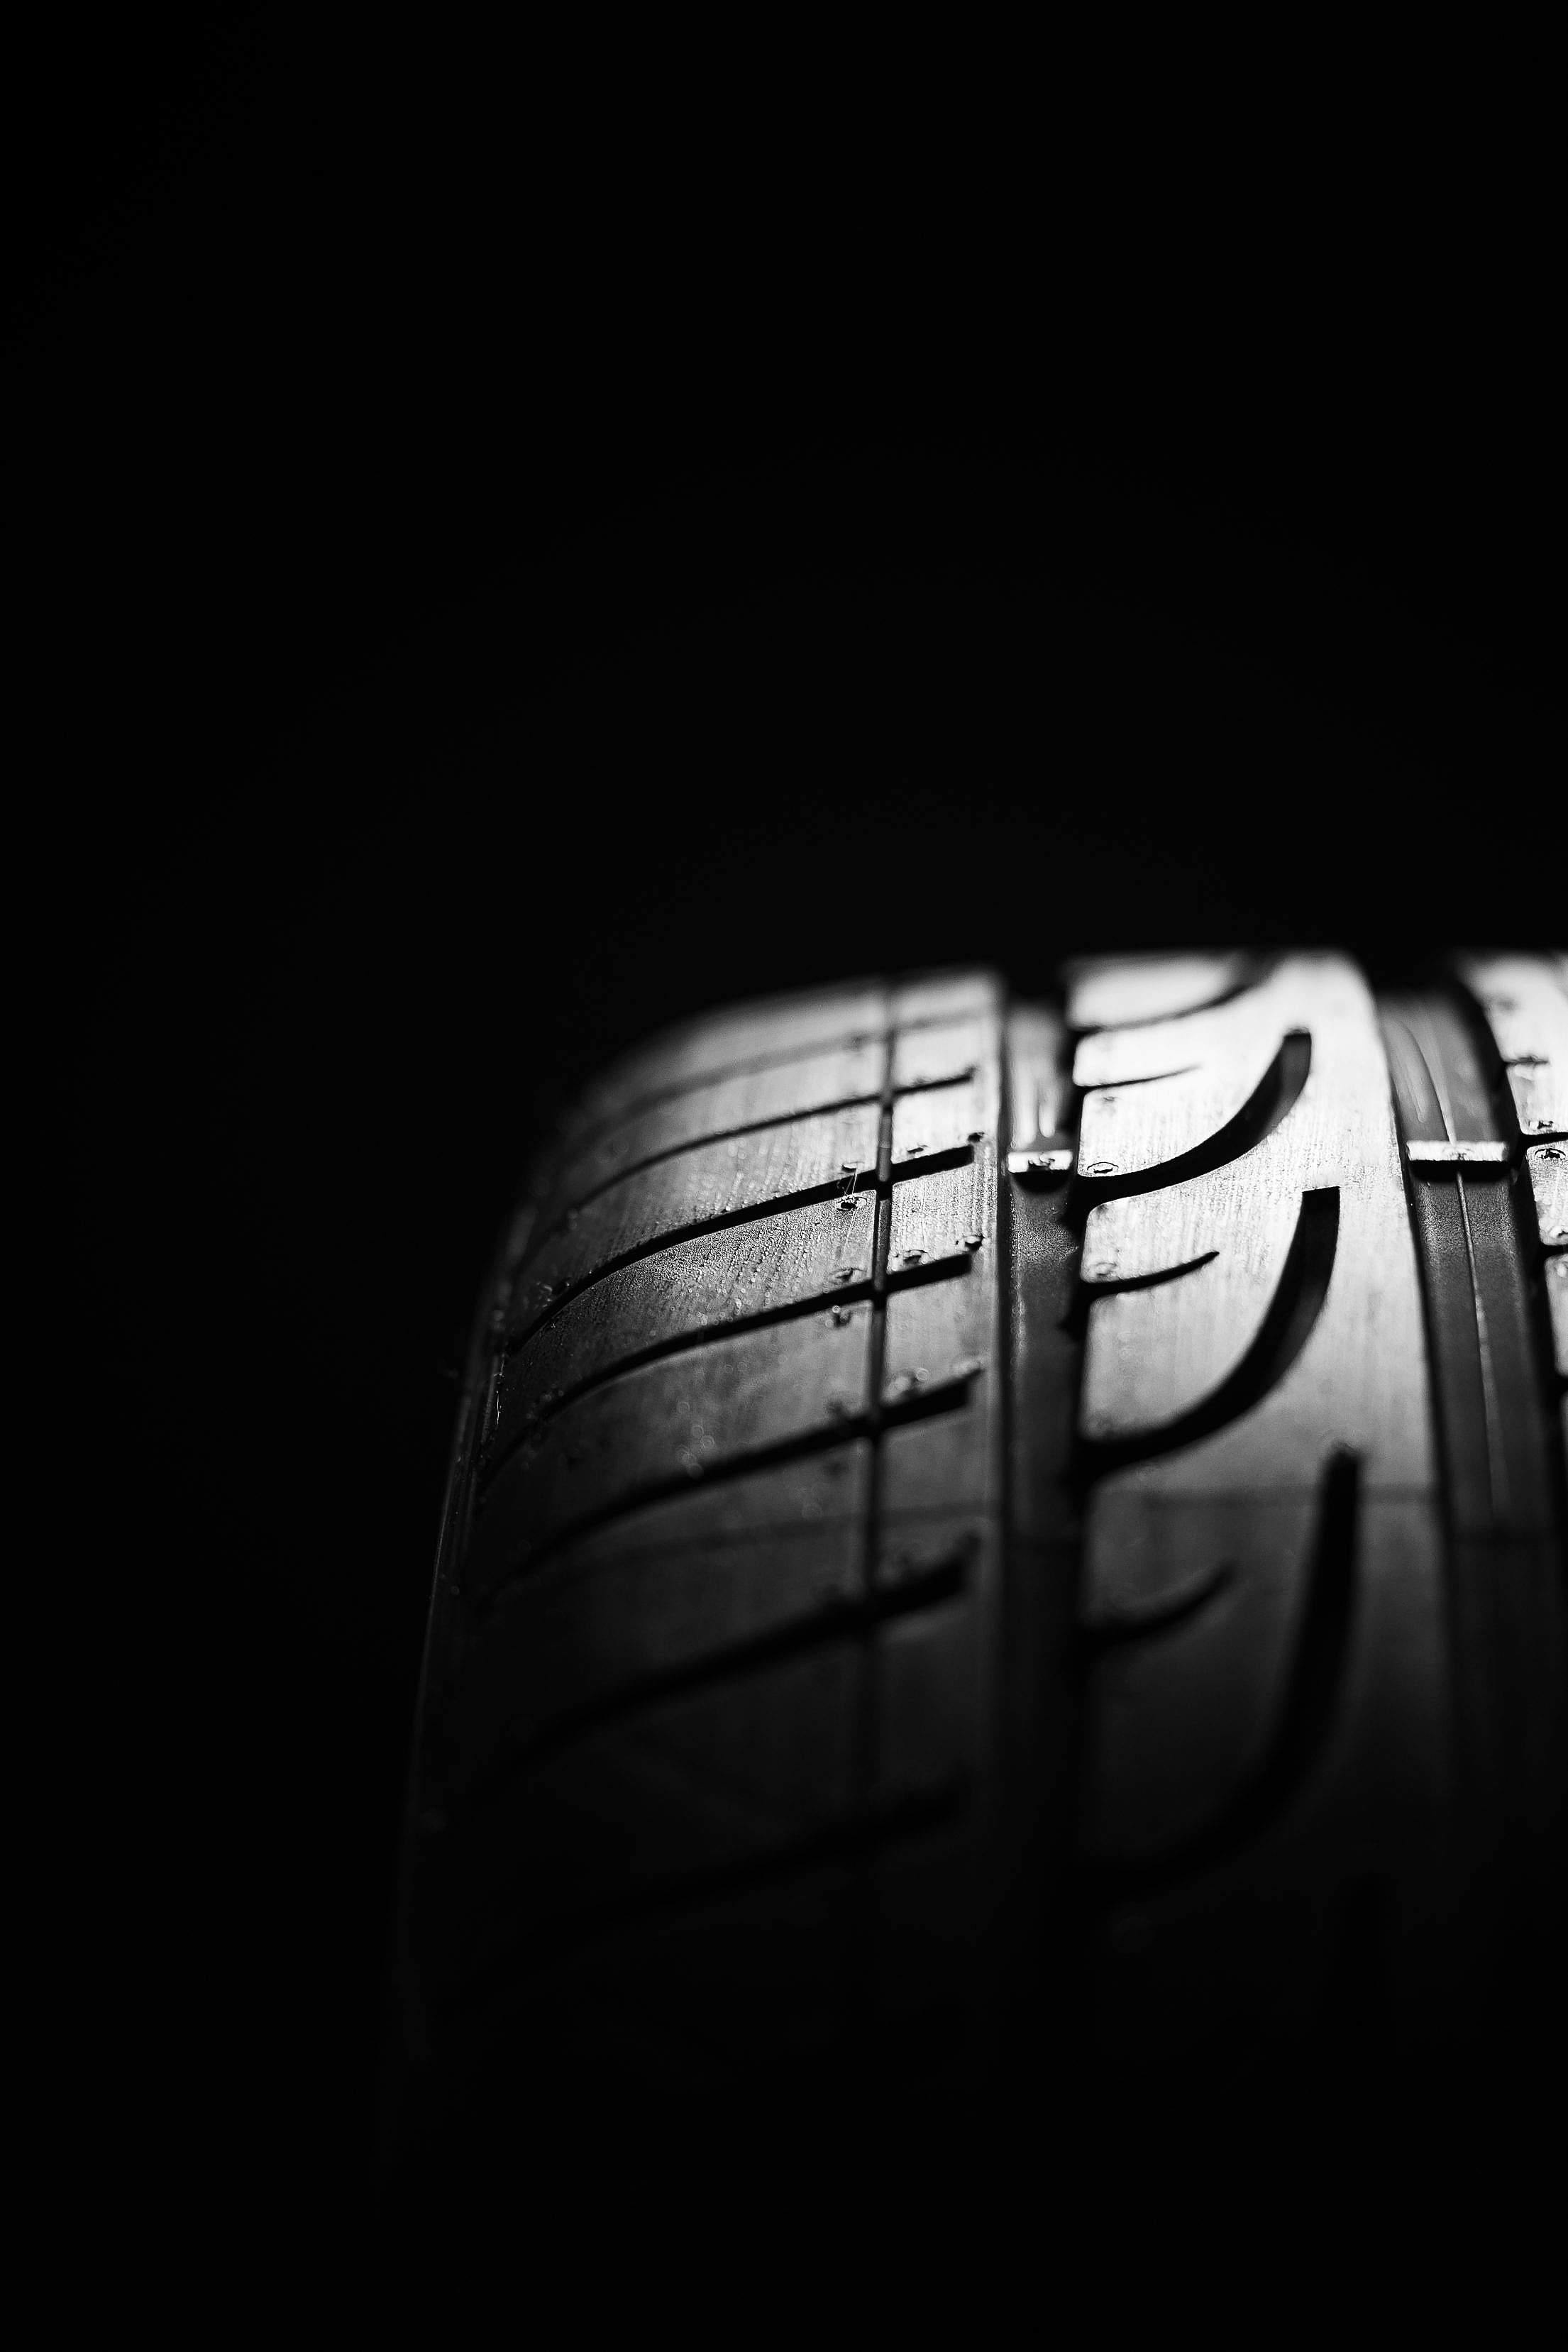 Car Tire Tread Pattern Close Up Vertical Free Stock Photo